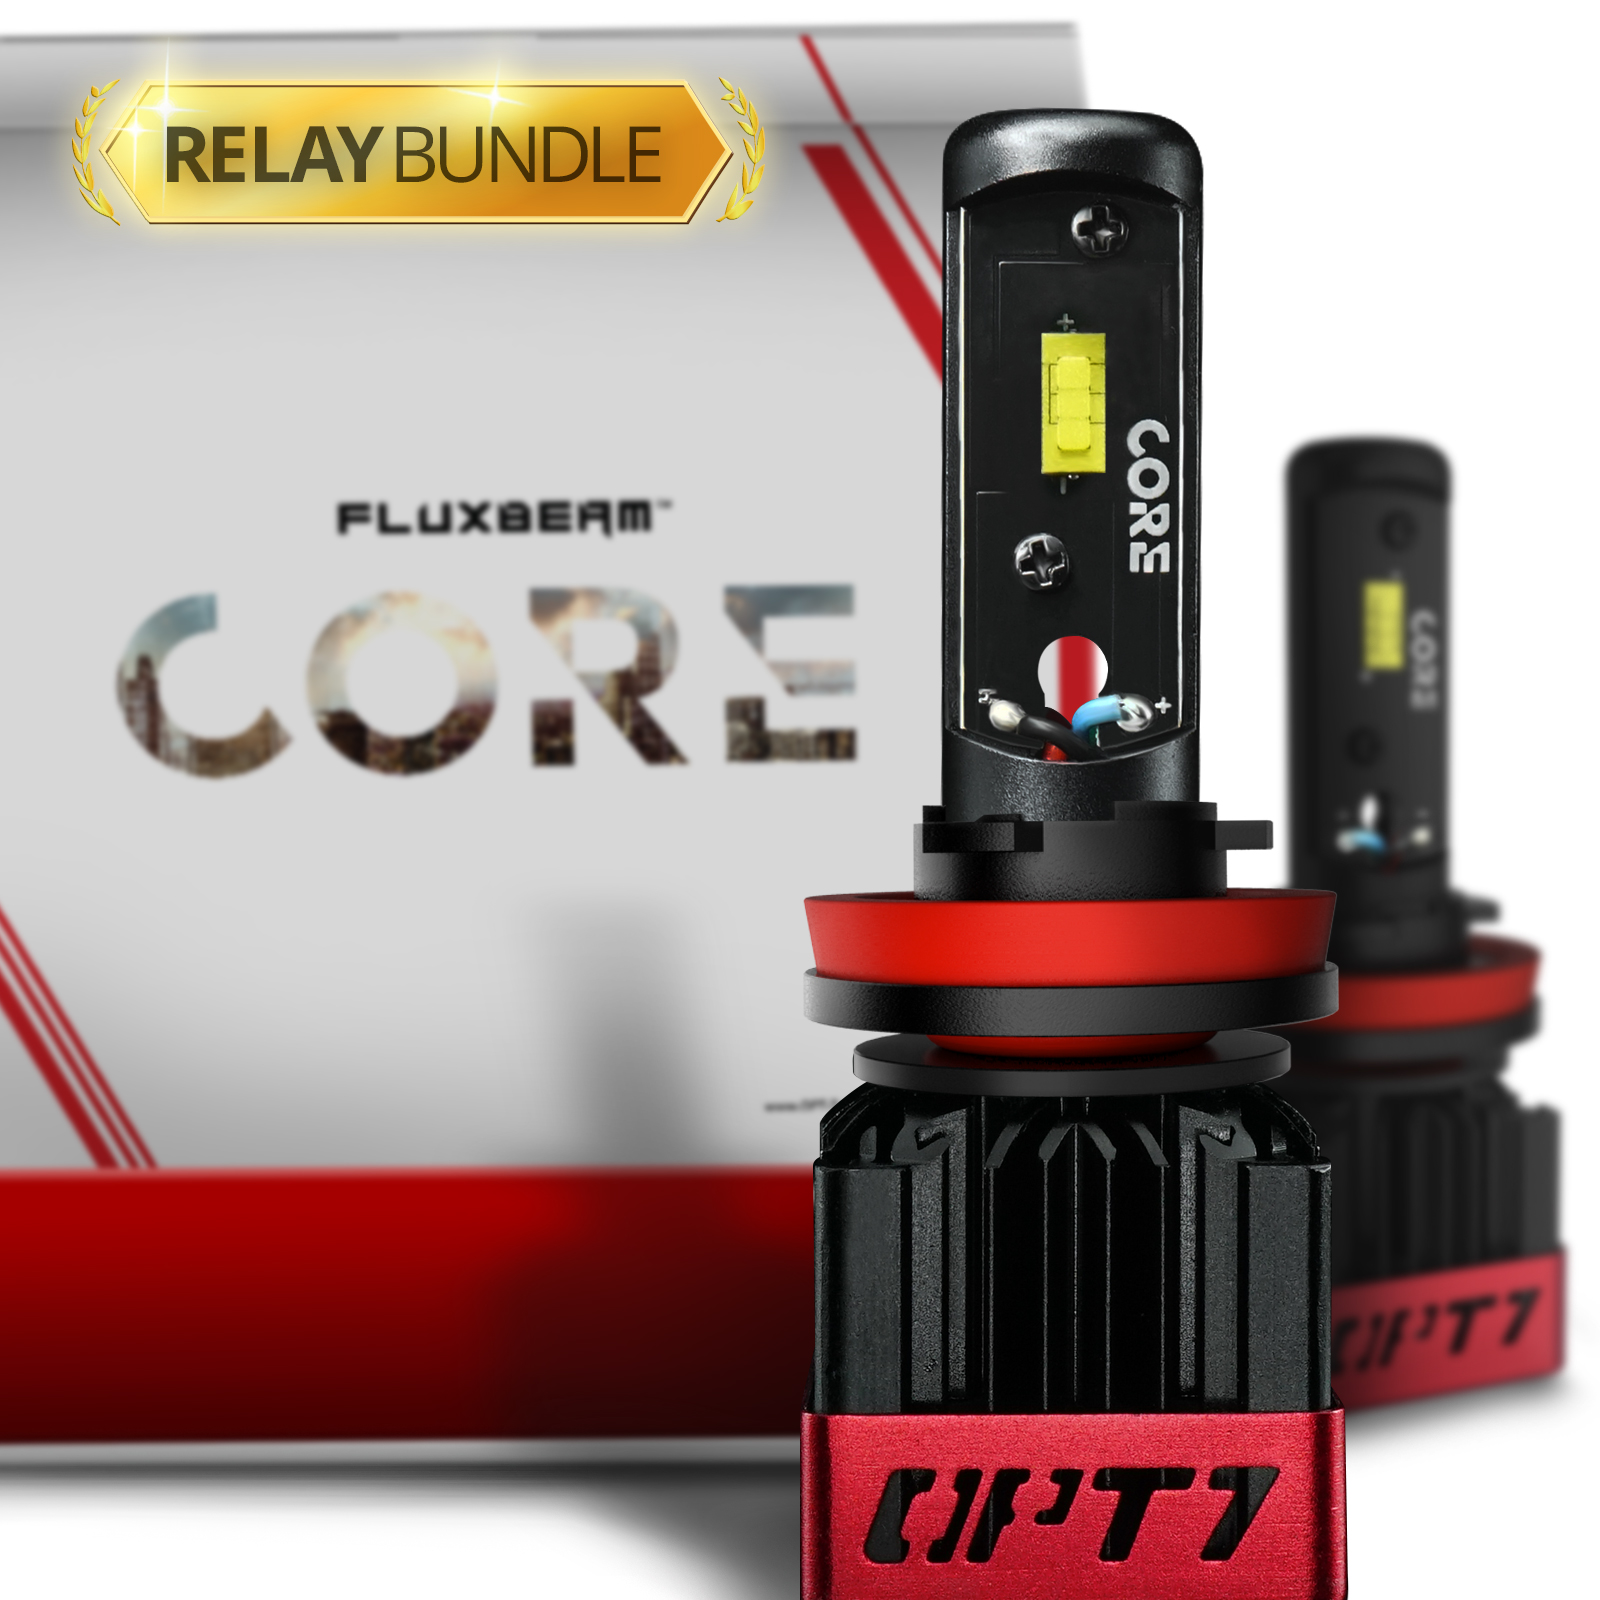 OPT7 Fluxbeam CORE H11 H8 H9 H16 LED Headlight Bulbs with Relay Bundle -FX-7500 CREE Chip Plug-N-Play Conversion Kit - 6,000LM 6000K Cool White - Built. Not Bought.